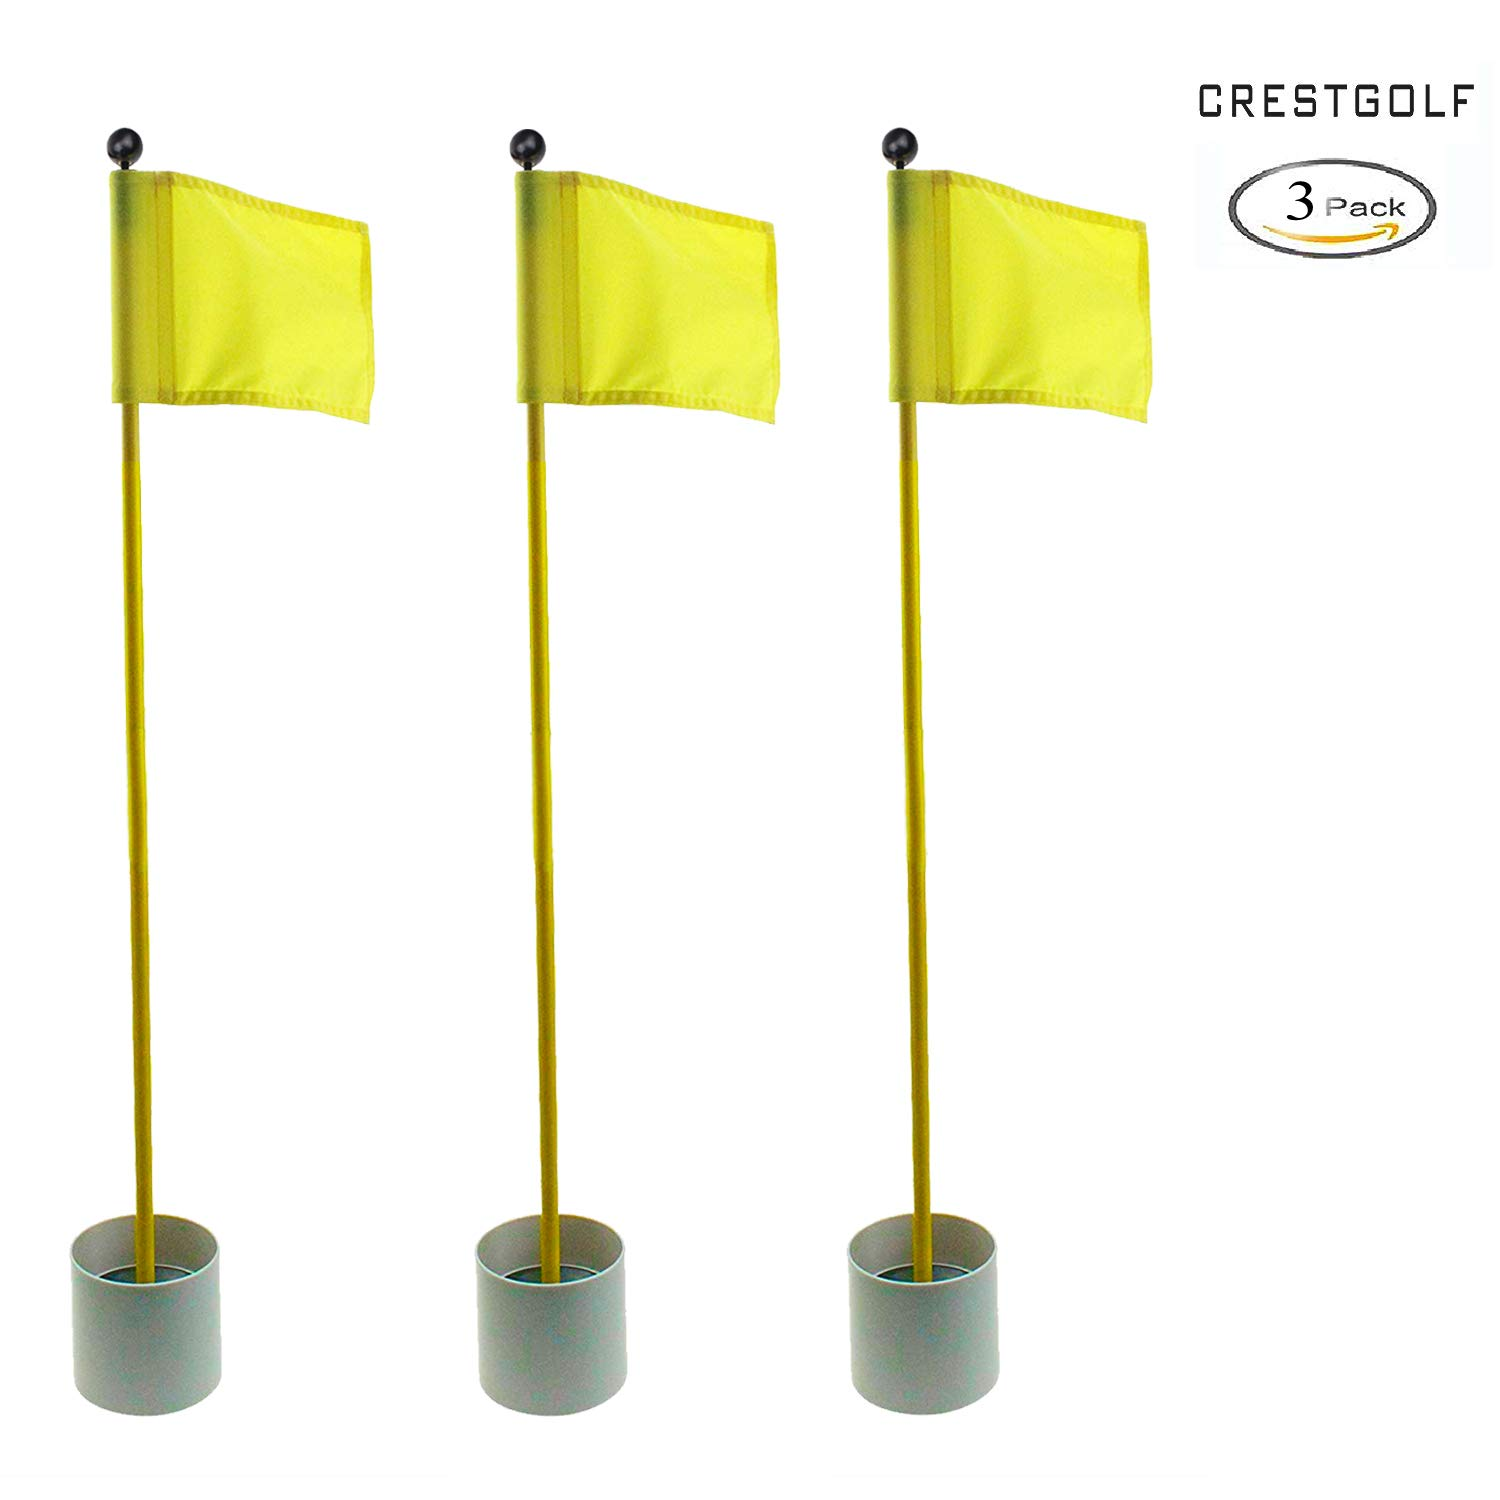 Crestgolf 3Sets Backyard Practice Golf Hole Pole Cup Flag Stick, 3 Section,Golf Putting Green Flagstick (yellow)